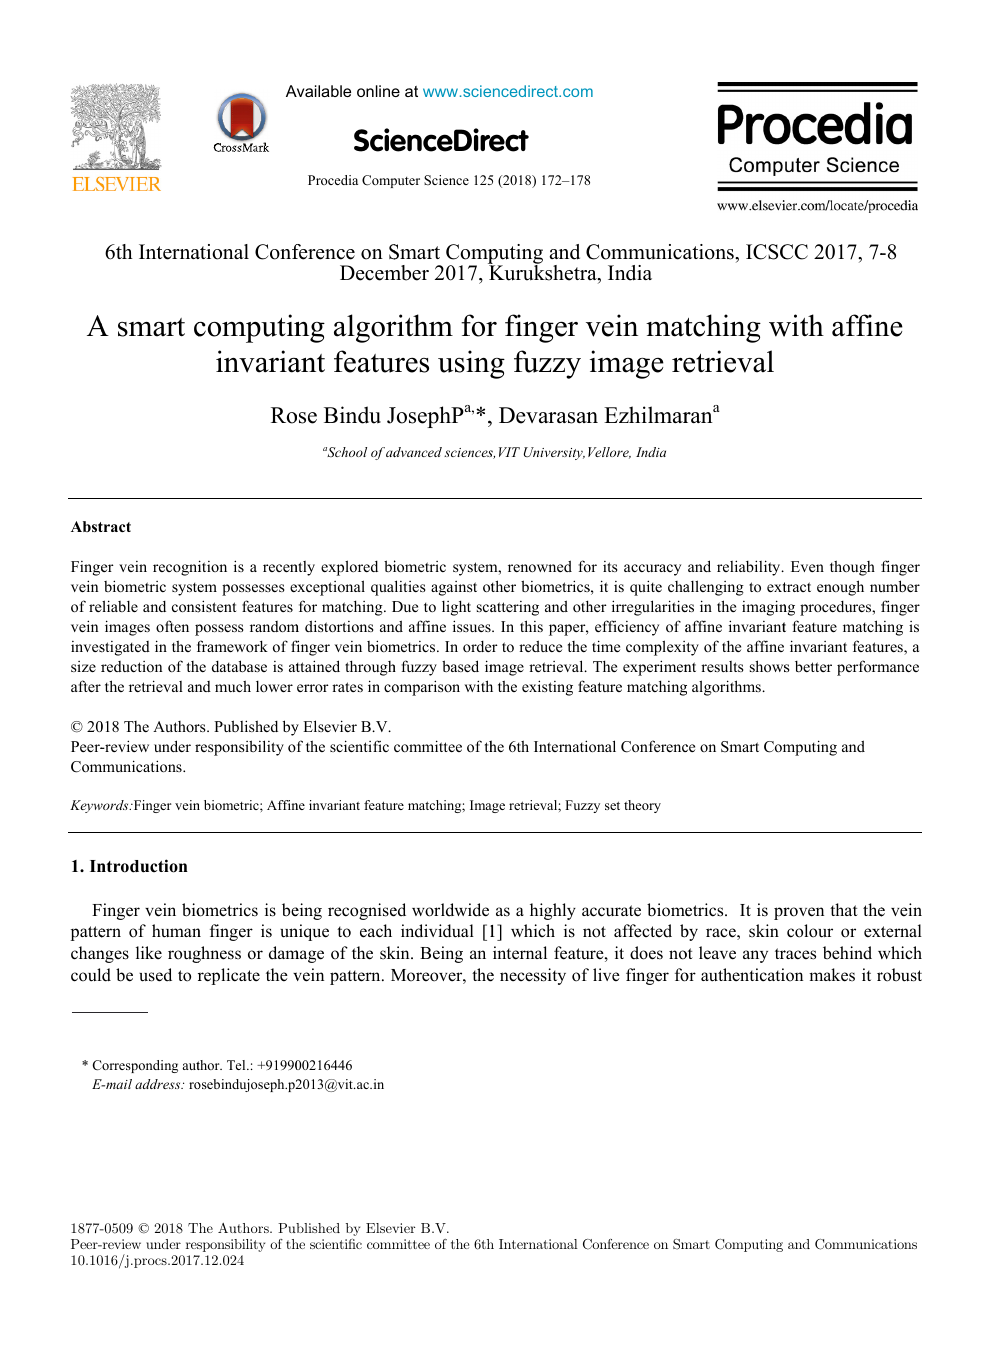 A smart computing algorithm for finger vein matching with